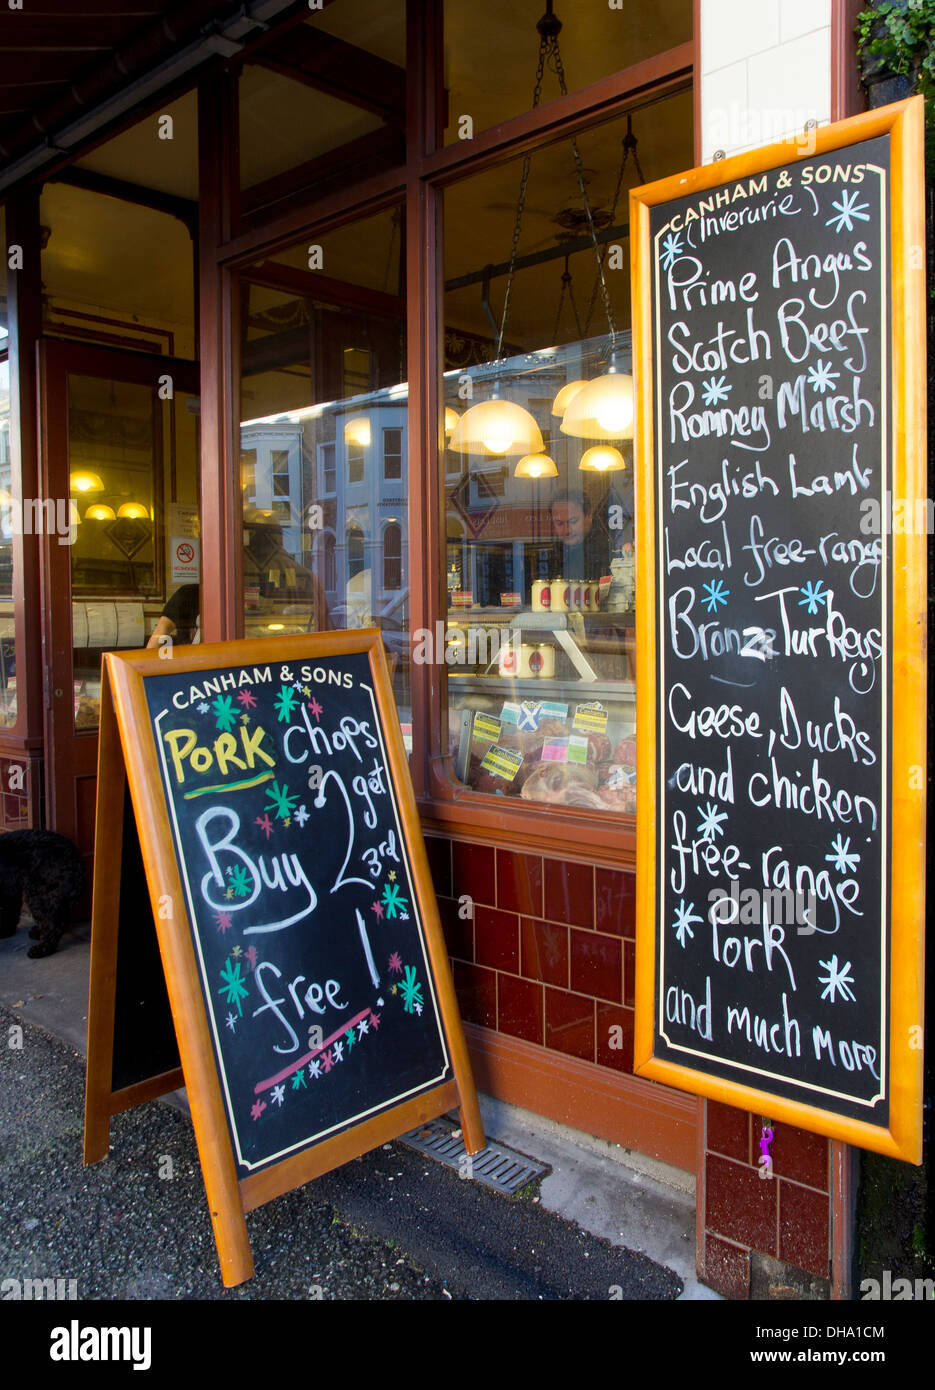 Blackboards outside Canham & Sons, a traditional butcher shop on Church Road, Brighton & Hove - Stock Image